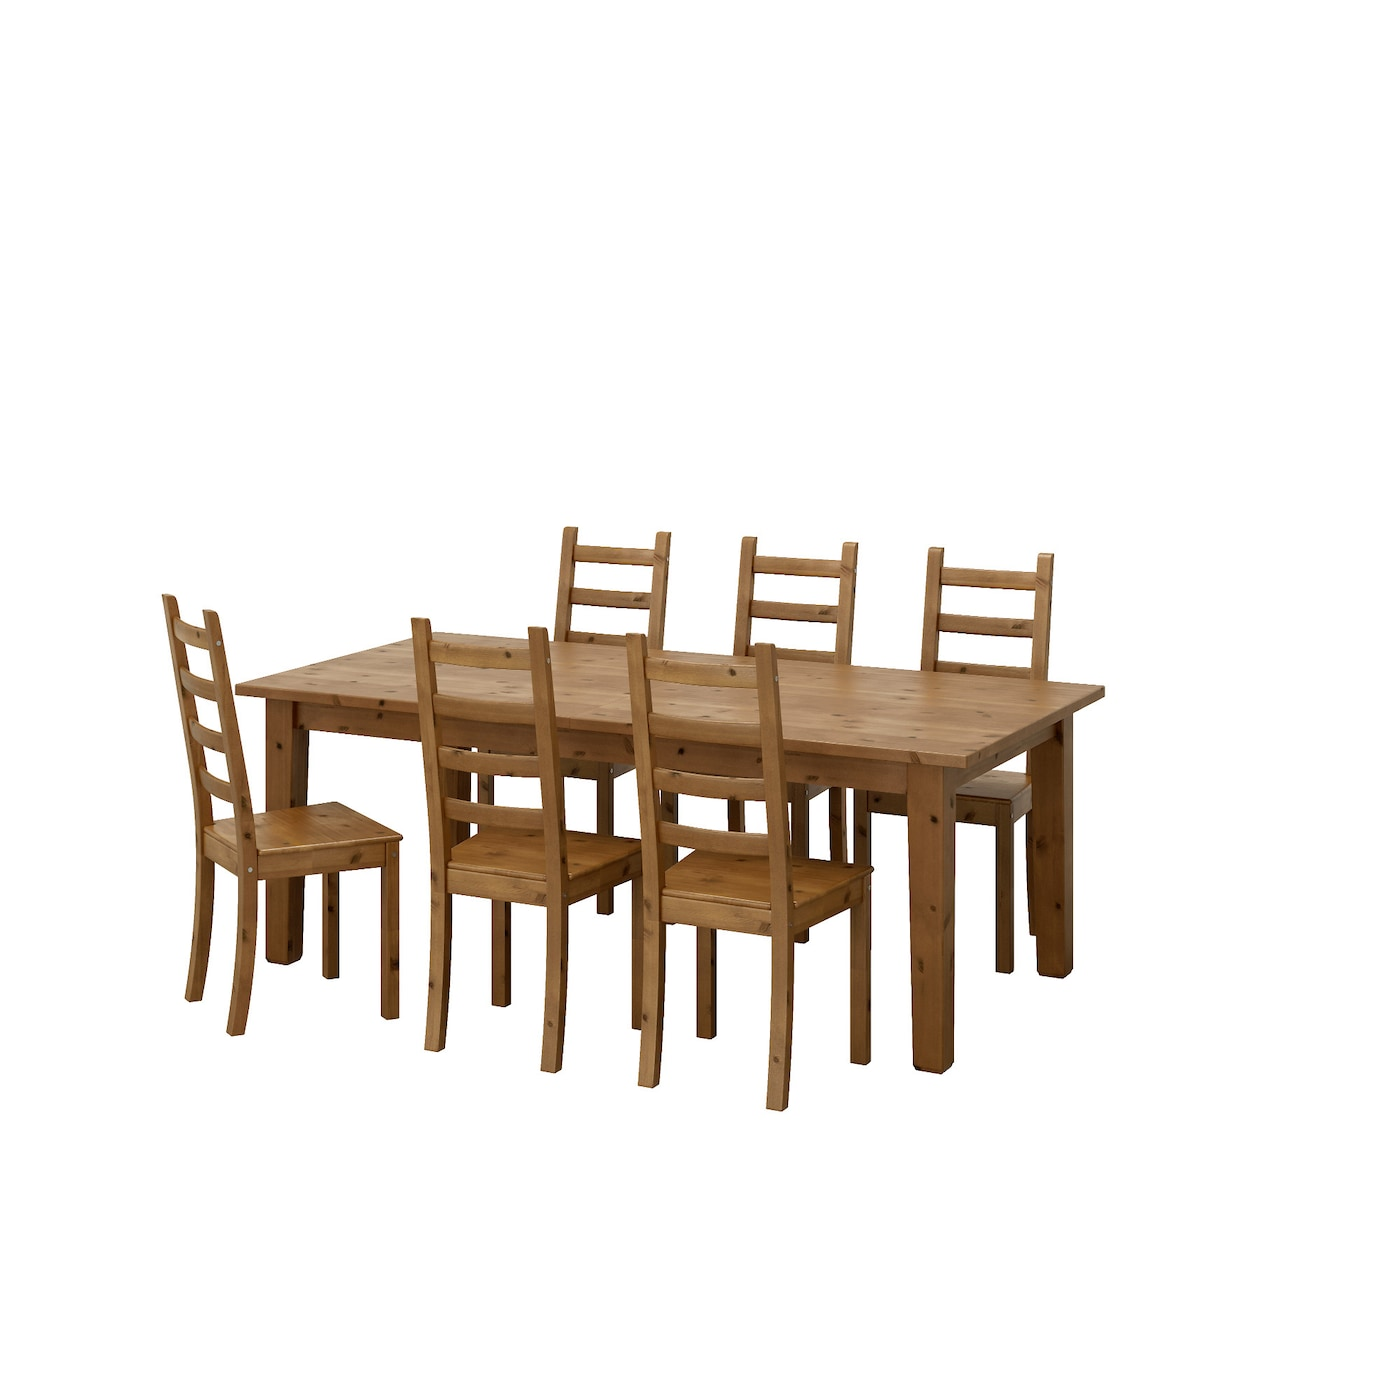 Kaustby storn s table and 6 chairs antique stain 201 cm ikea for Table 4 personnes ikea